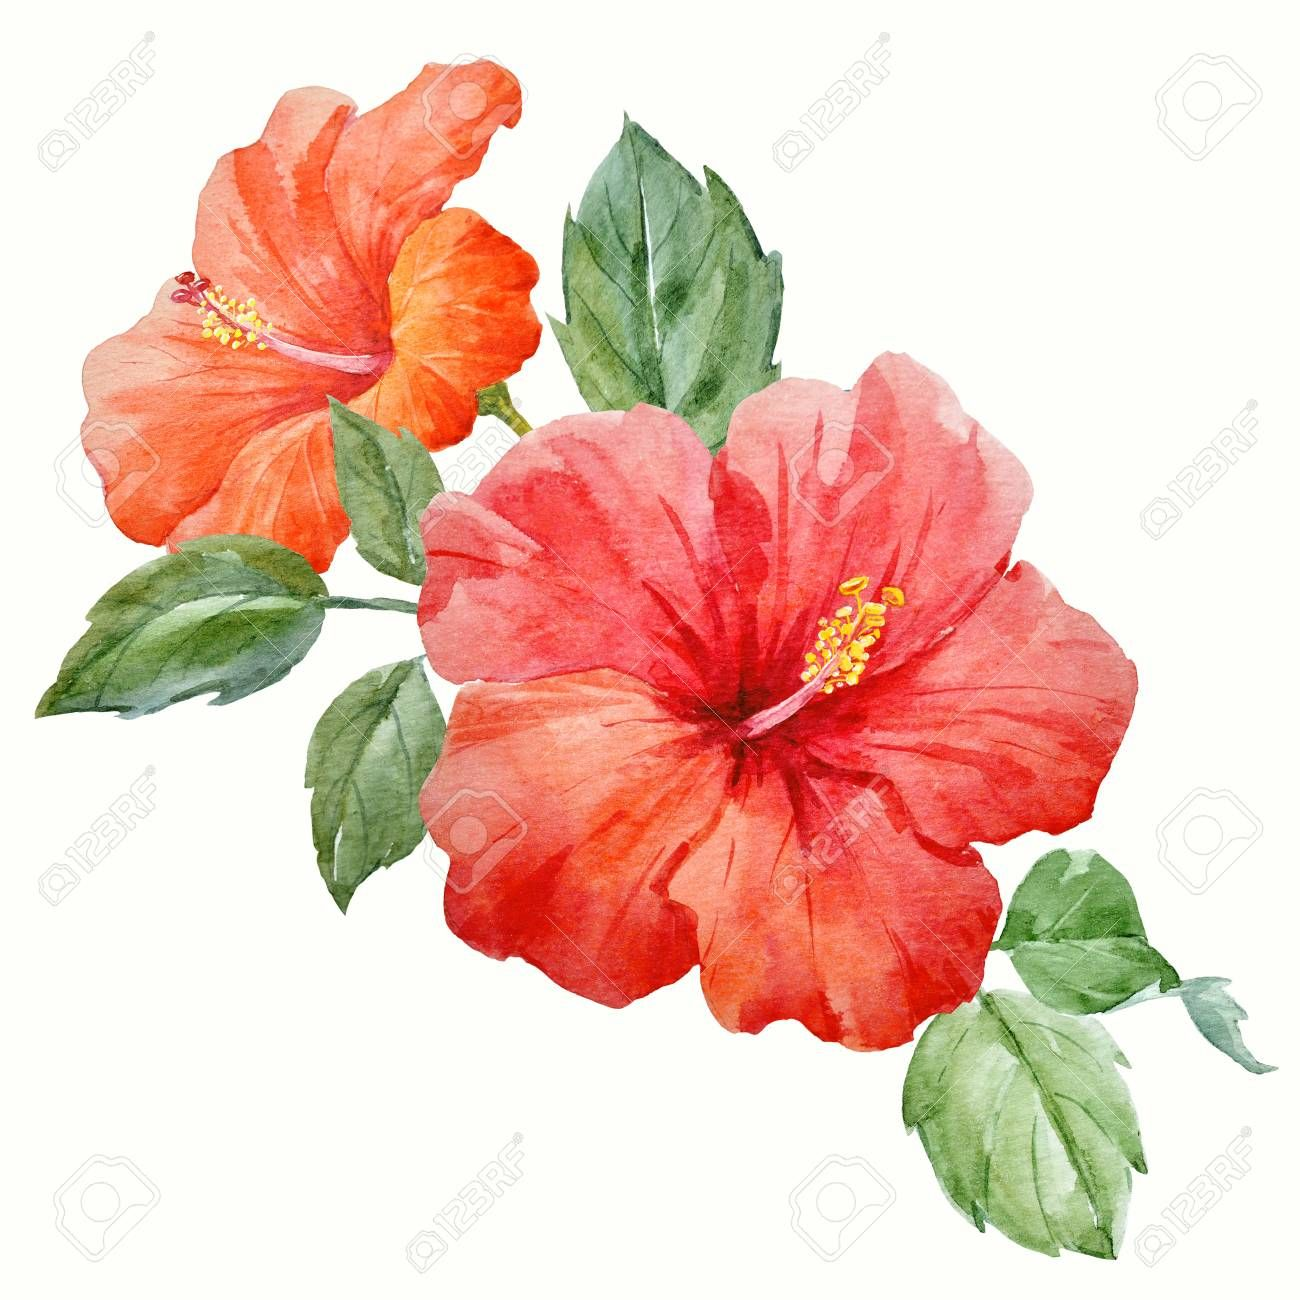 Watercolor Tropical Hibiscus Flower Stock Photo Sponsored Hibiscus Tropical Watercolor Photo Flower Art Images Watercolor Flowers Hibiscus Drawing